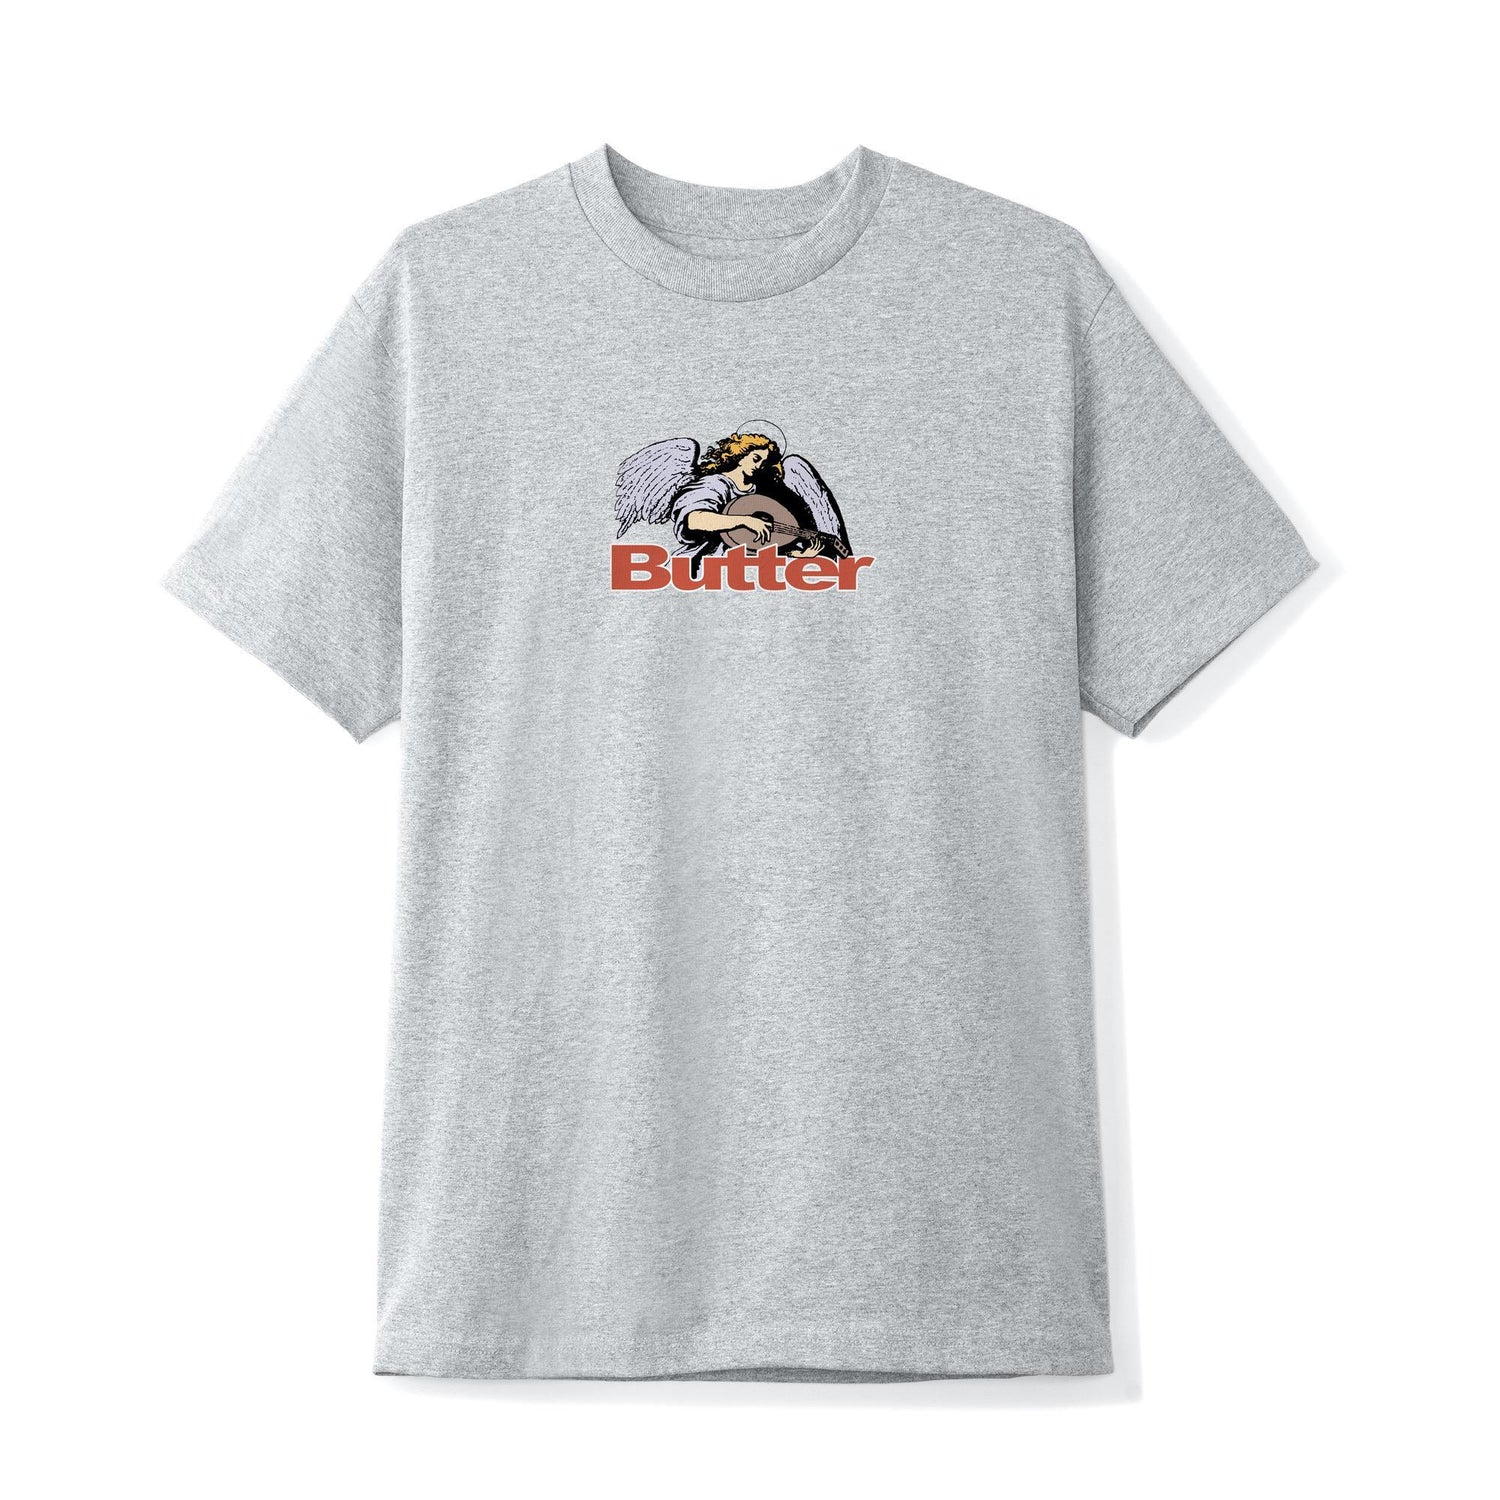 Serenade Logo Tee, Heather Grey